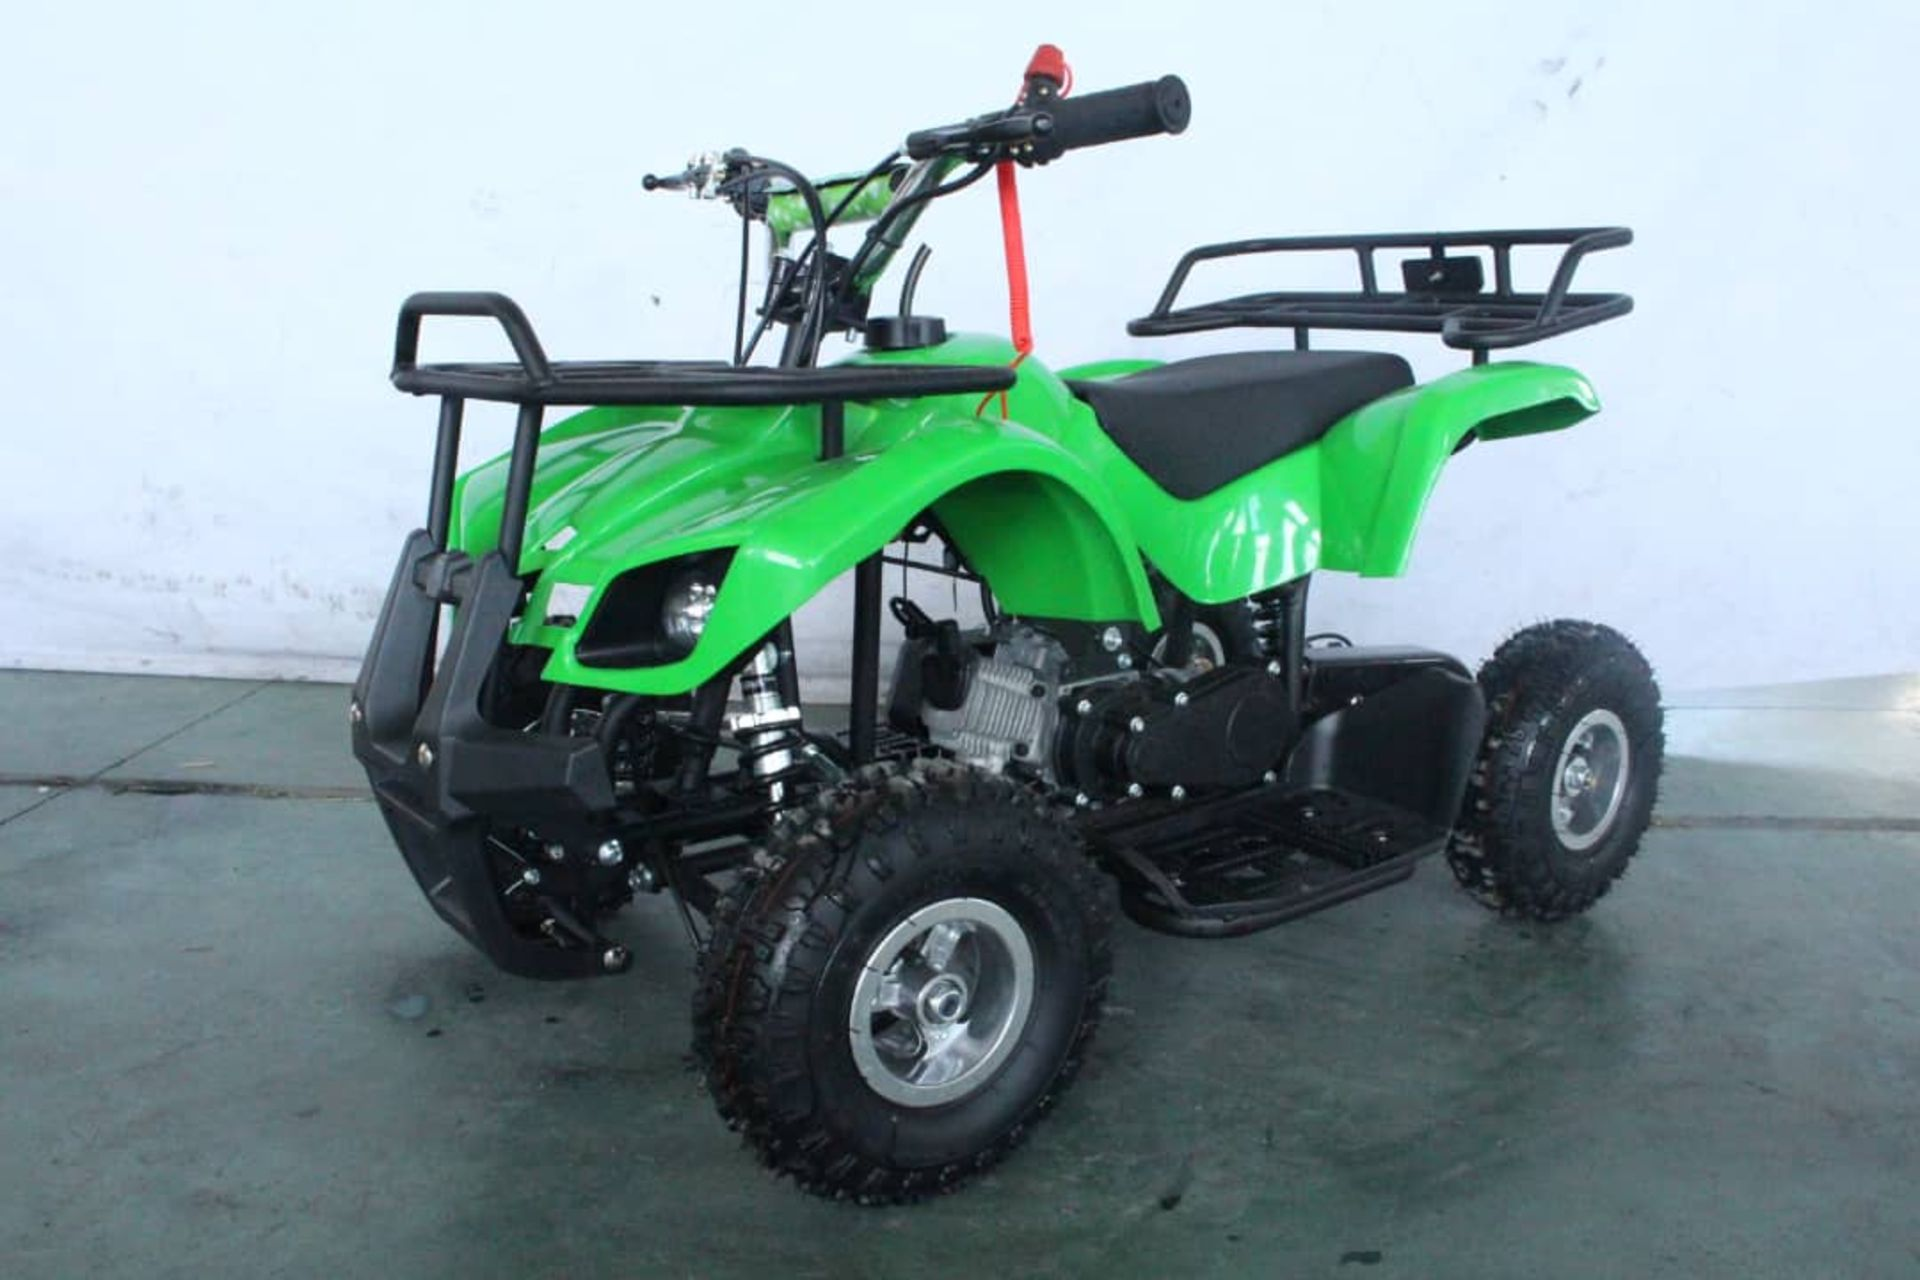 + VAT Brand New 49cc Hawk Mini Quad Bike - Colours May Vary - Full Front And Rear Suspension - Disk - Image 2 of 9